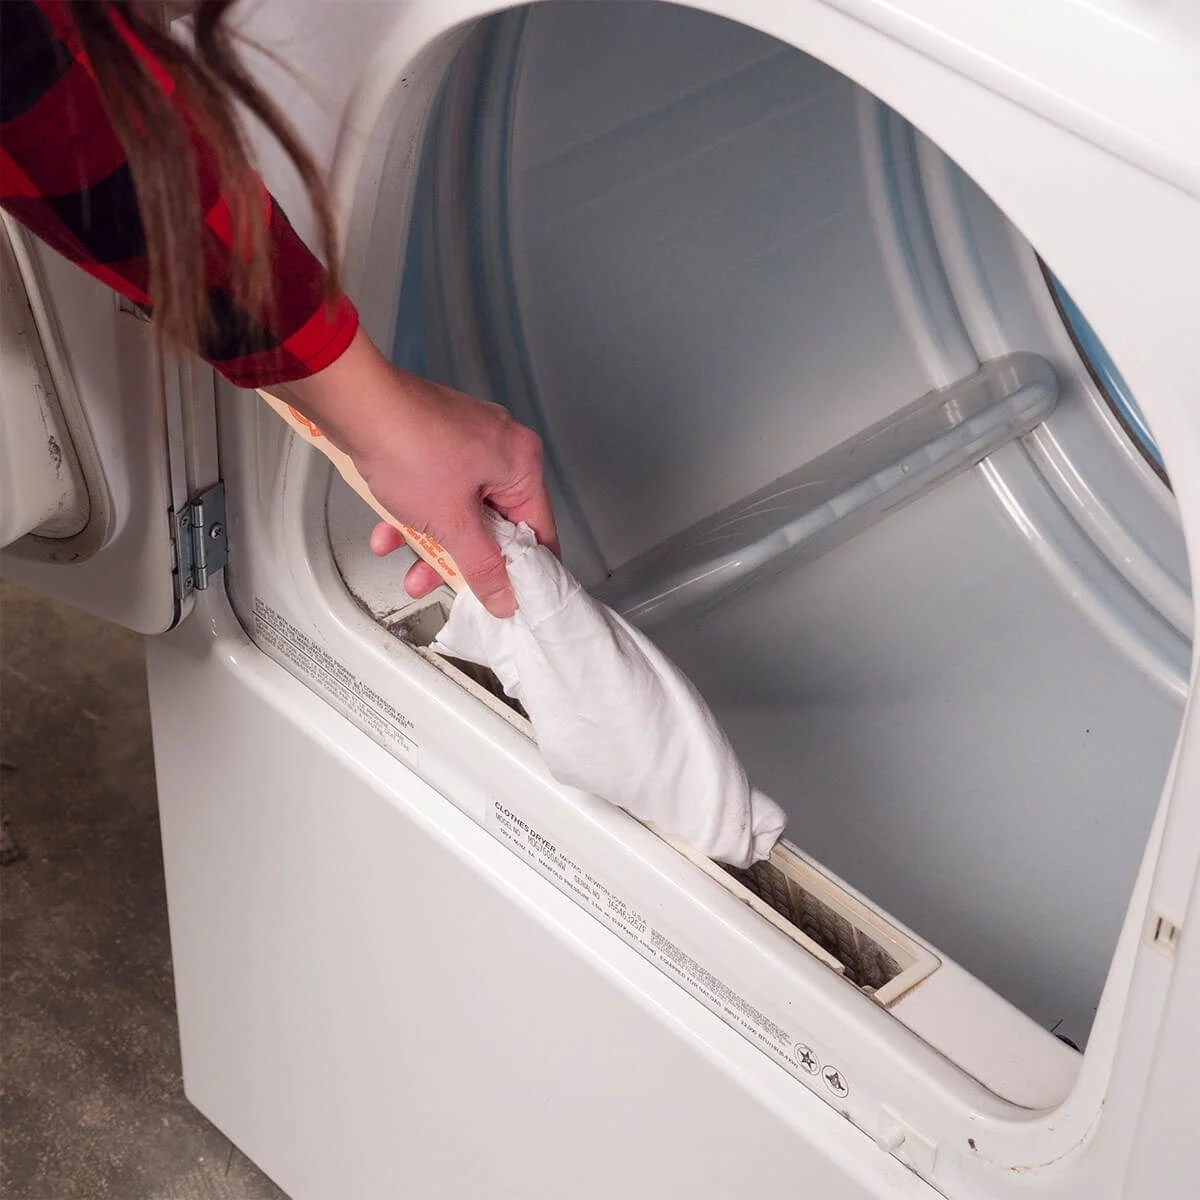 Paint Stick To Clean Lint Buildup The Family Handyman - Dryer Lint Cleaner